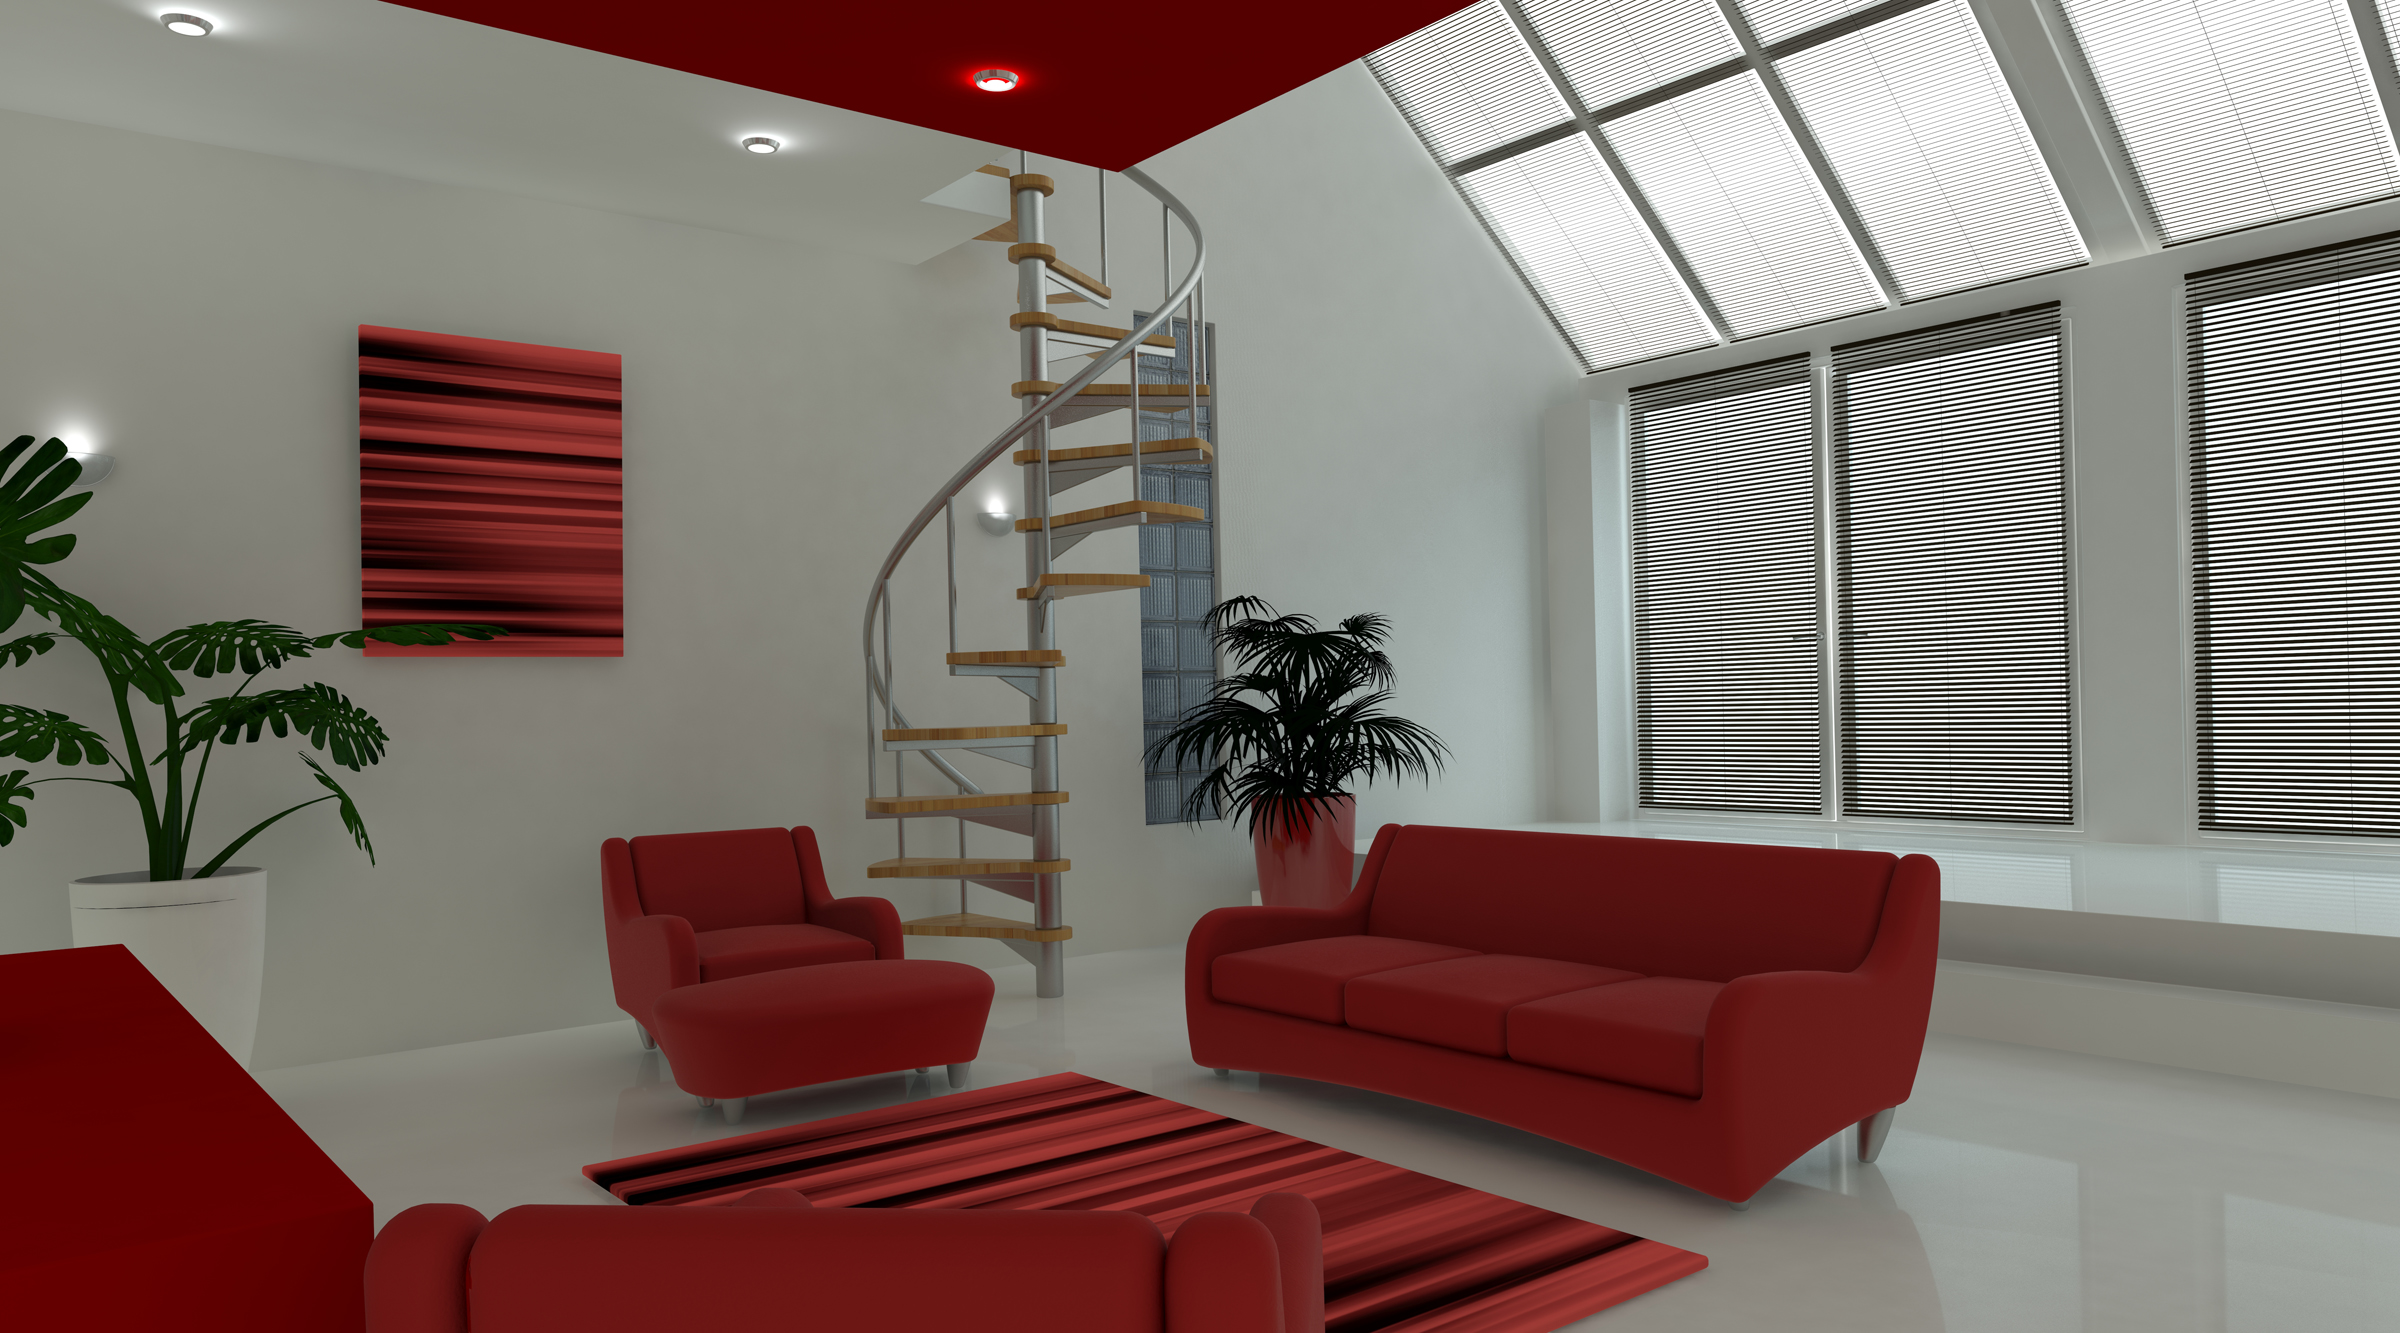 3d Design Of A Room With Stairs Interior Design Marbella